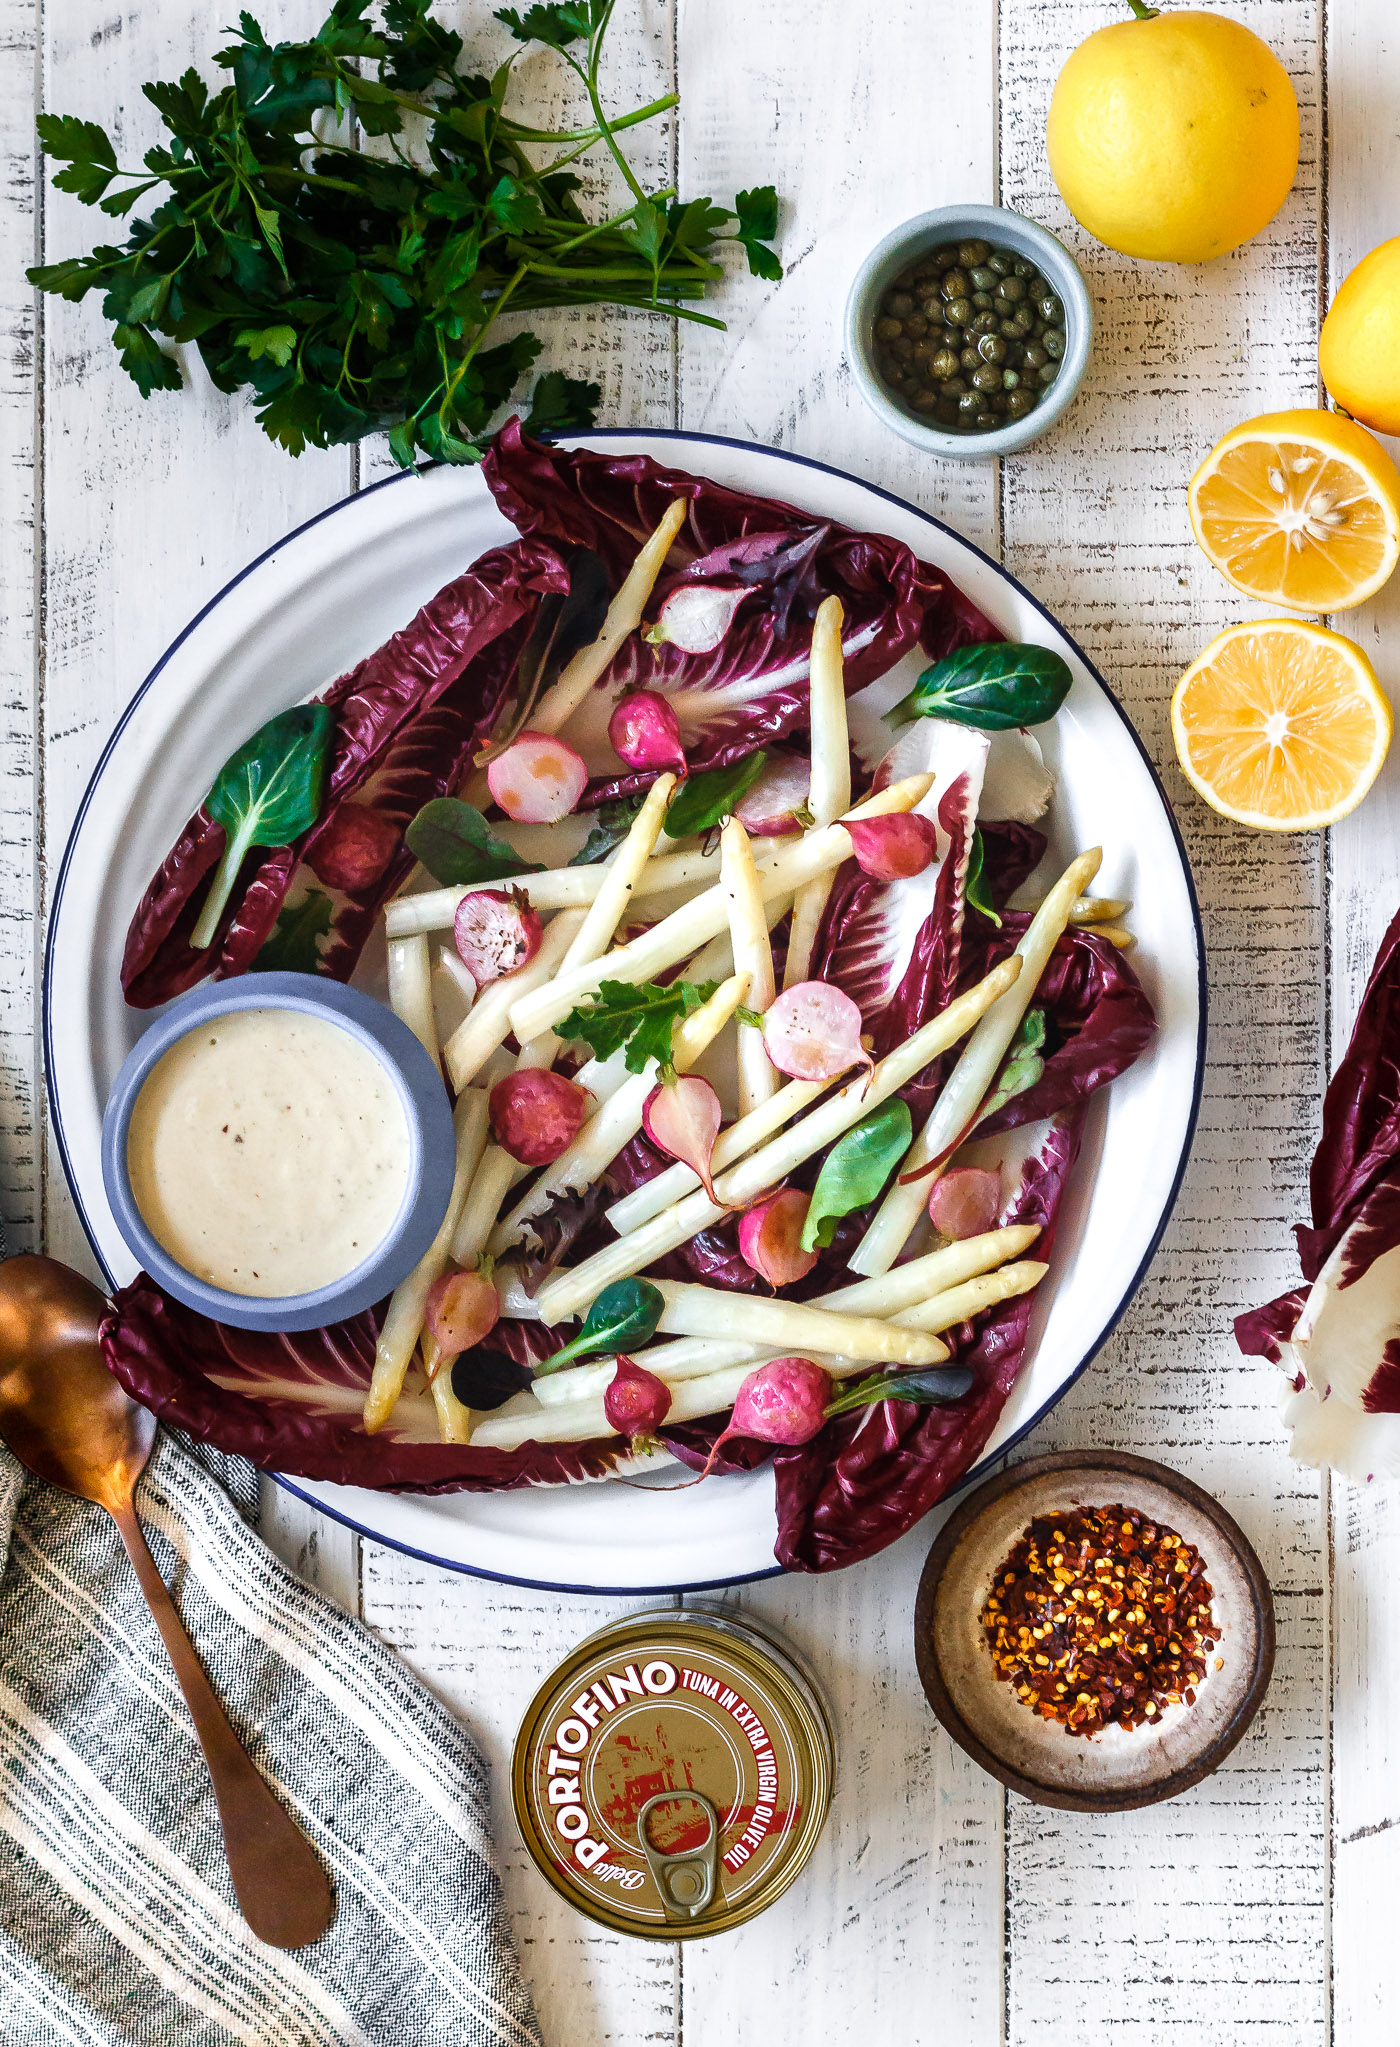 Meyer Lemon & Chile Tonnato Sauce in a bowl next to platter of white asparagus, treviso and roasted radish